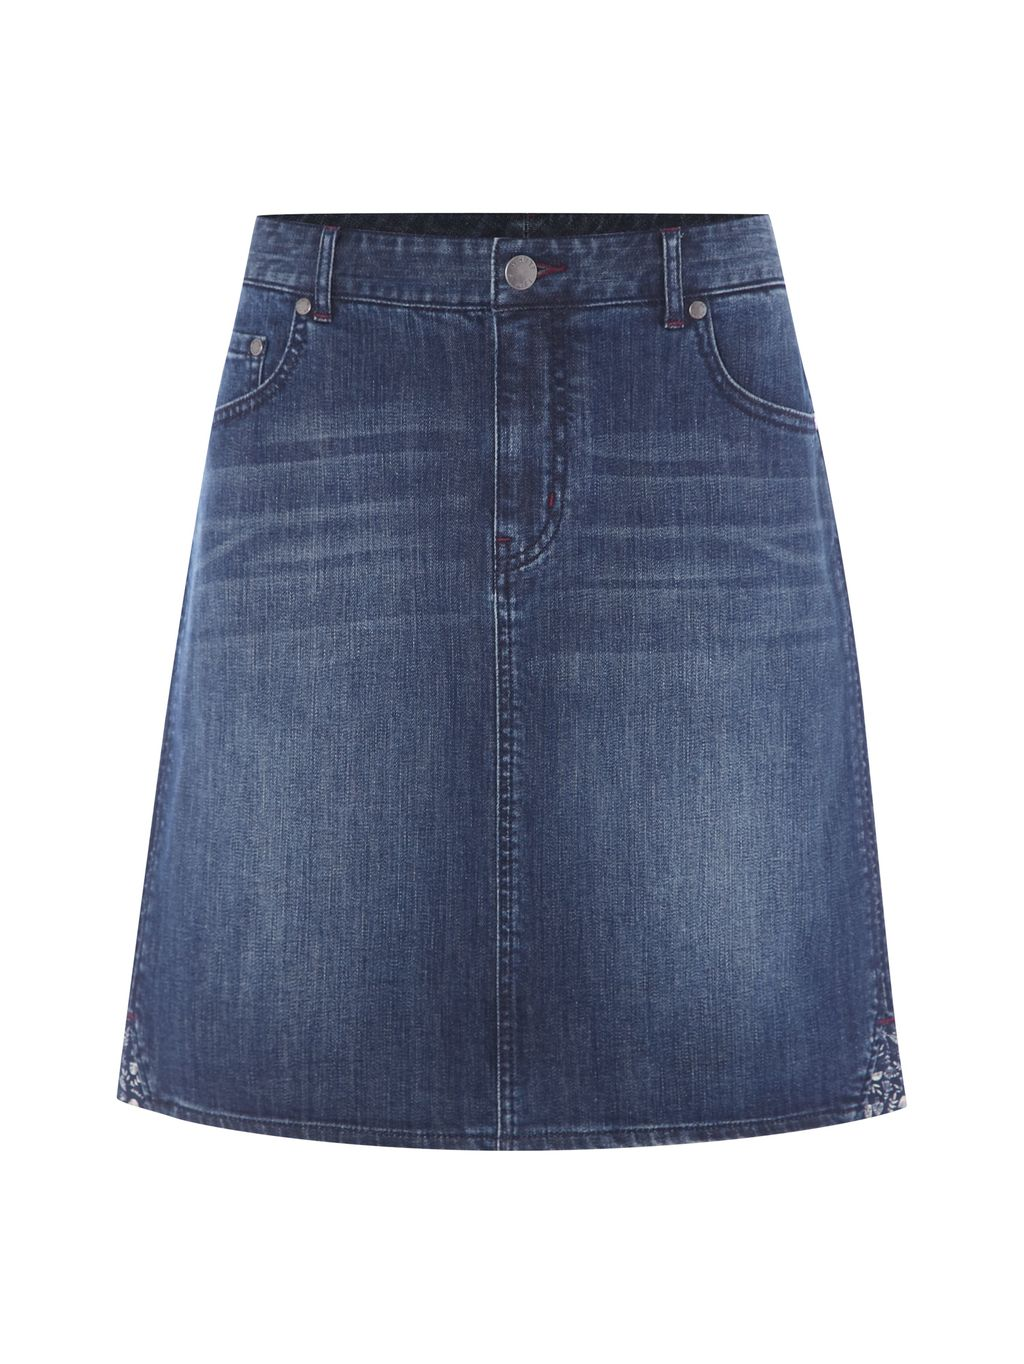 Country Walk Denim Skirt, Denim - pattern: plain; fit: loose/voluminous; waist: mid/regular rise; predominant colour: navy; occasions: casual, creative work; length: just above the knee; style: a-line; fibres: cotton - stretch; texture group: denim; pattern type: fabric; season: s/s 2016; wardrobe: basic